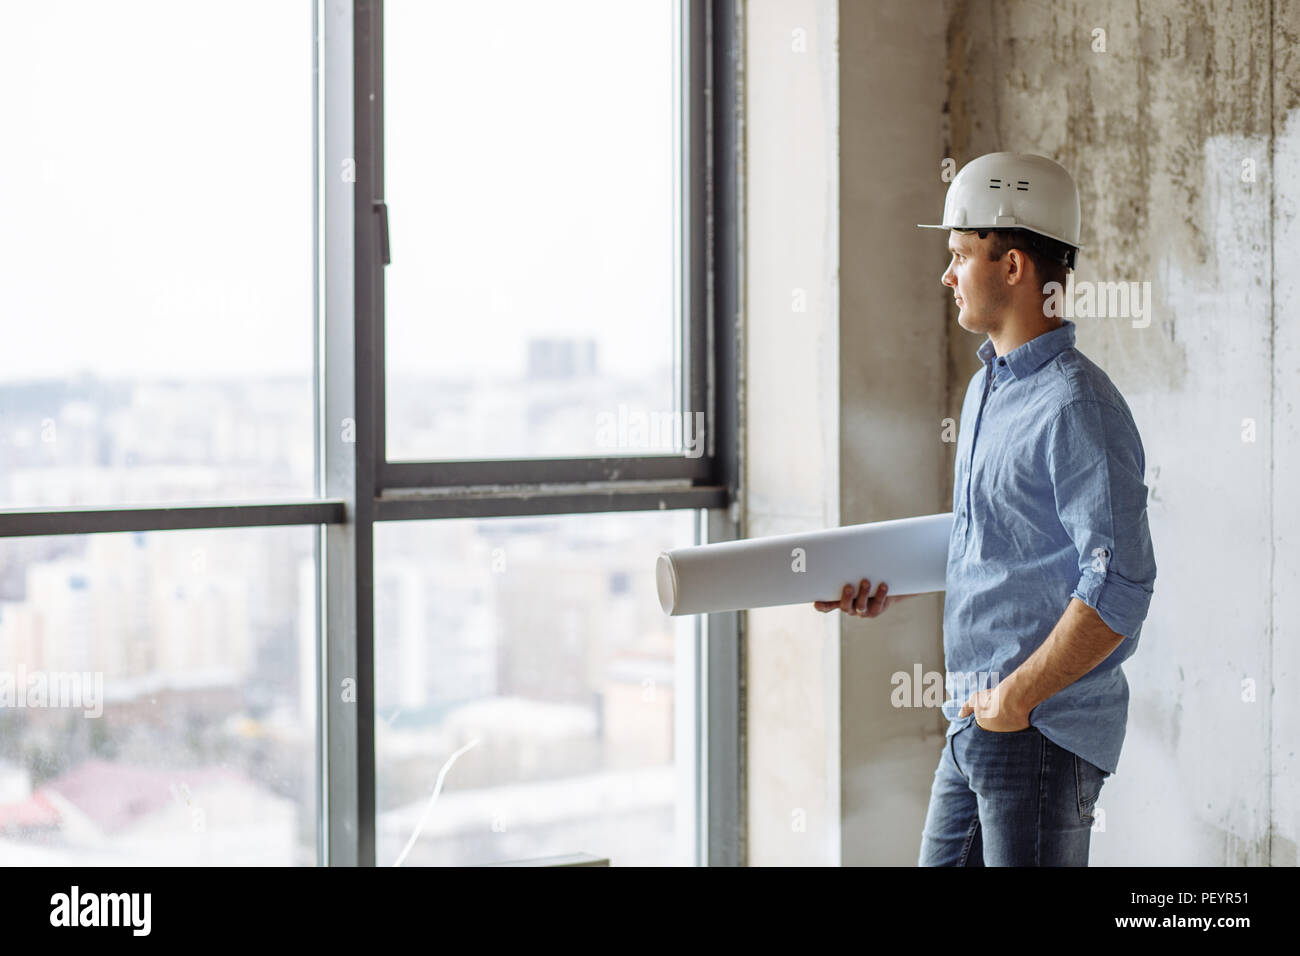 handsome guy in hardhat putting his hand on the pocket and looking at the panorama window. side view photo - Stock Image